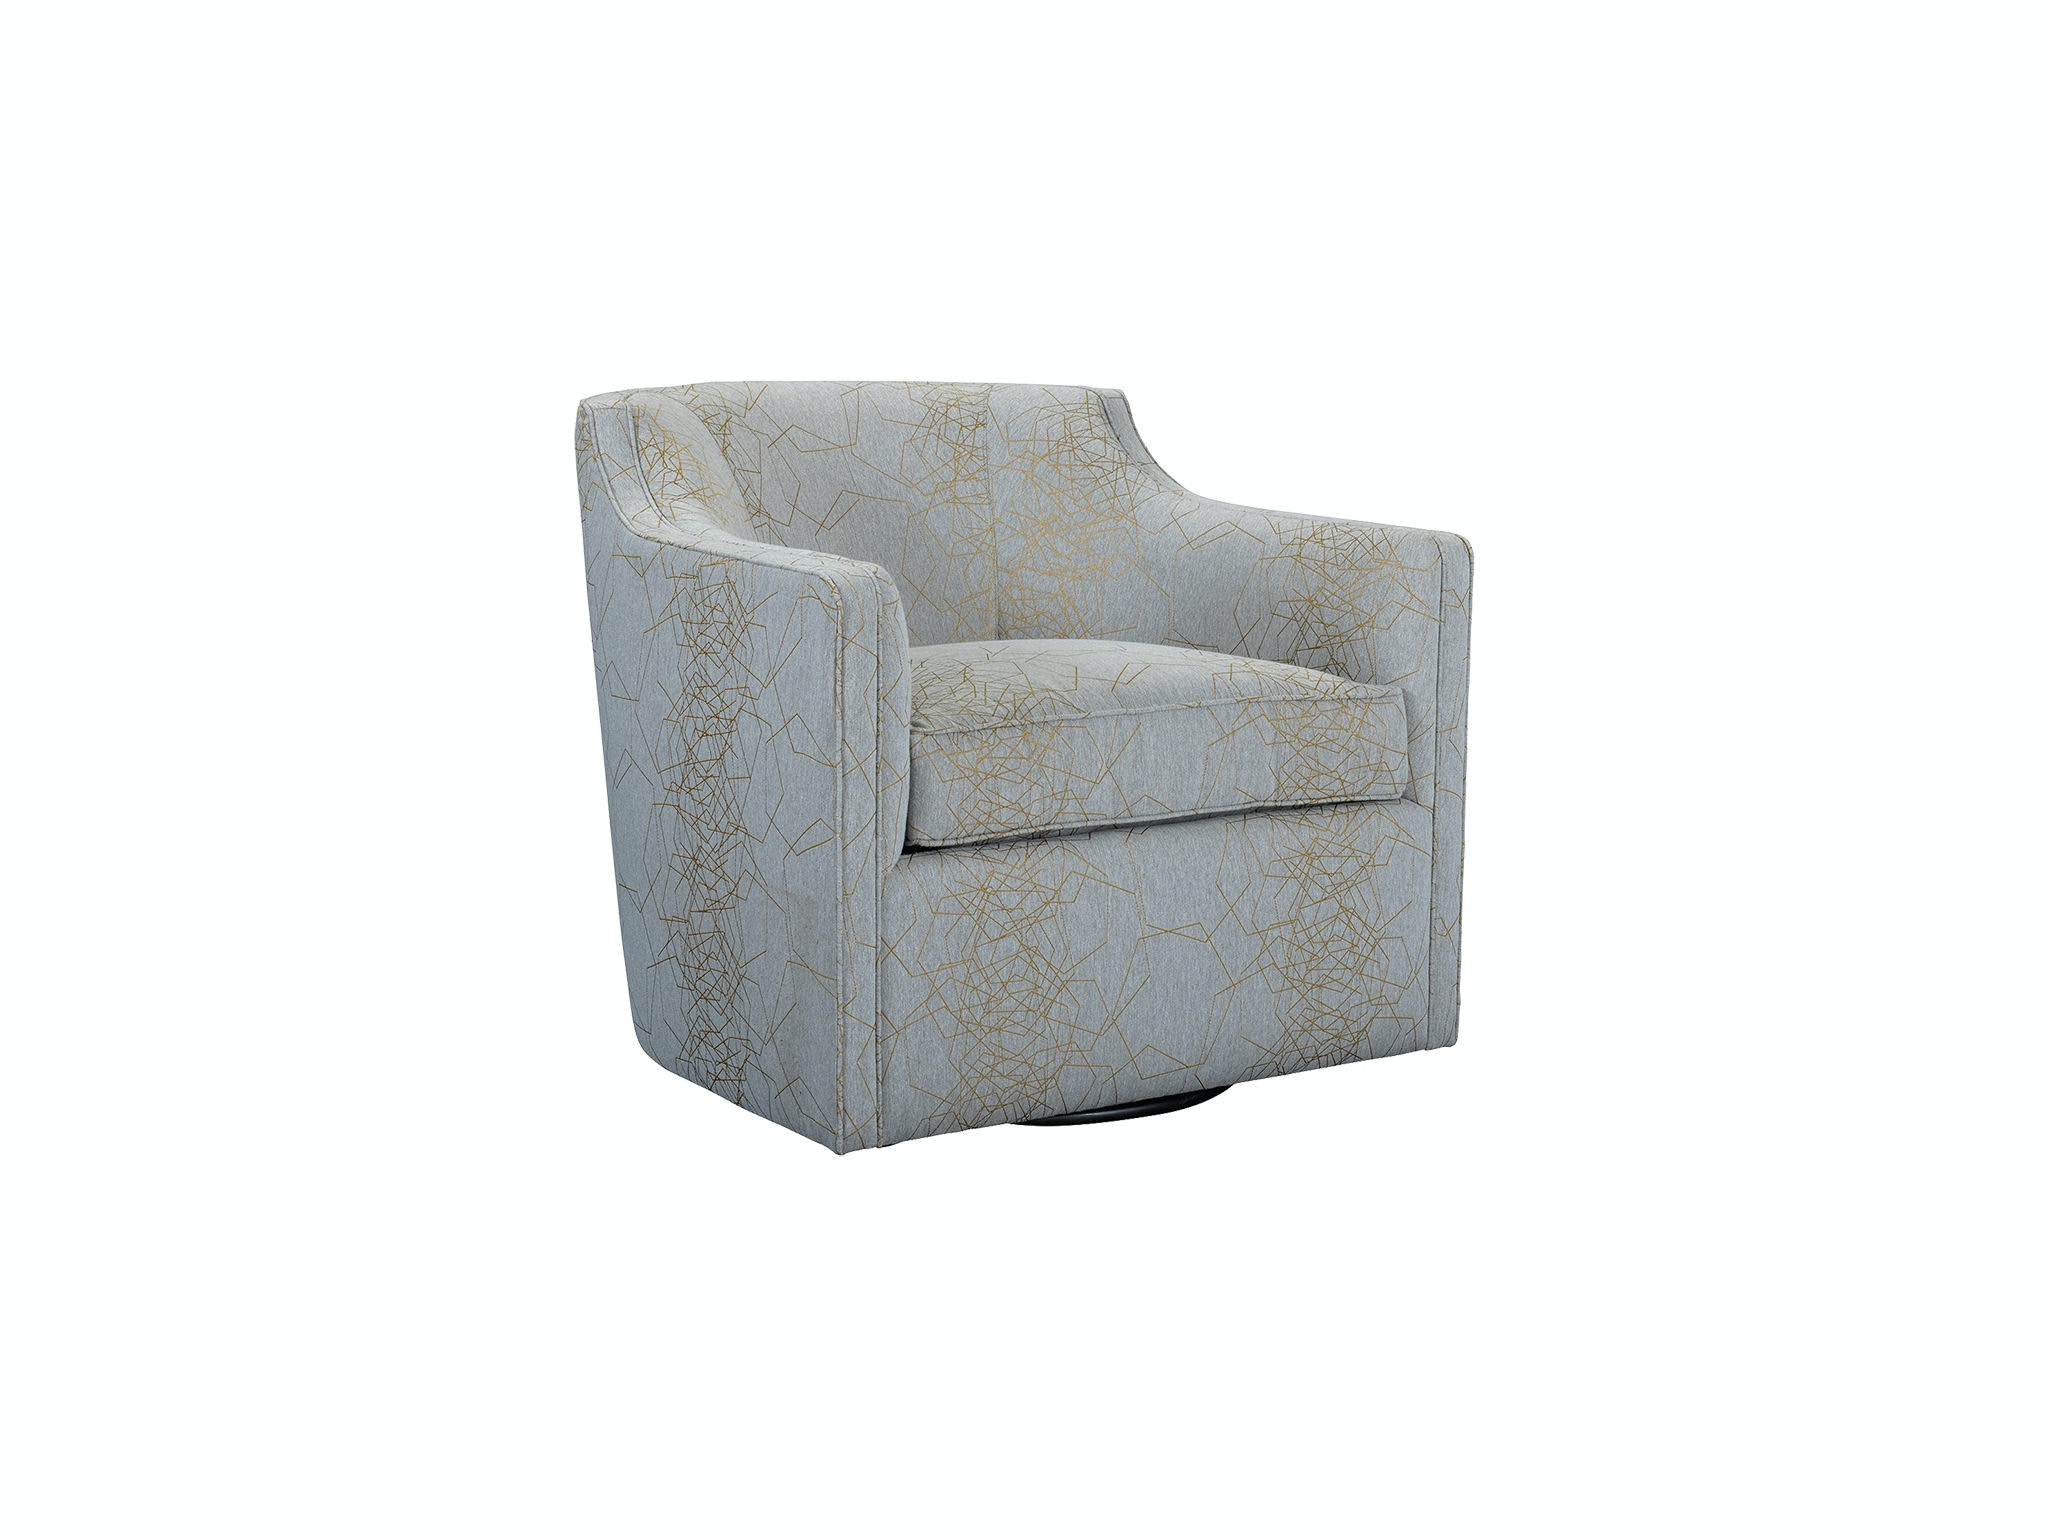 Broyhill TJMaxx Gayle Swivel Chair 9079 8